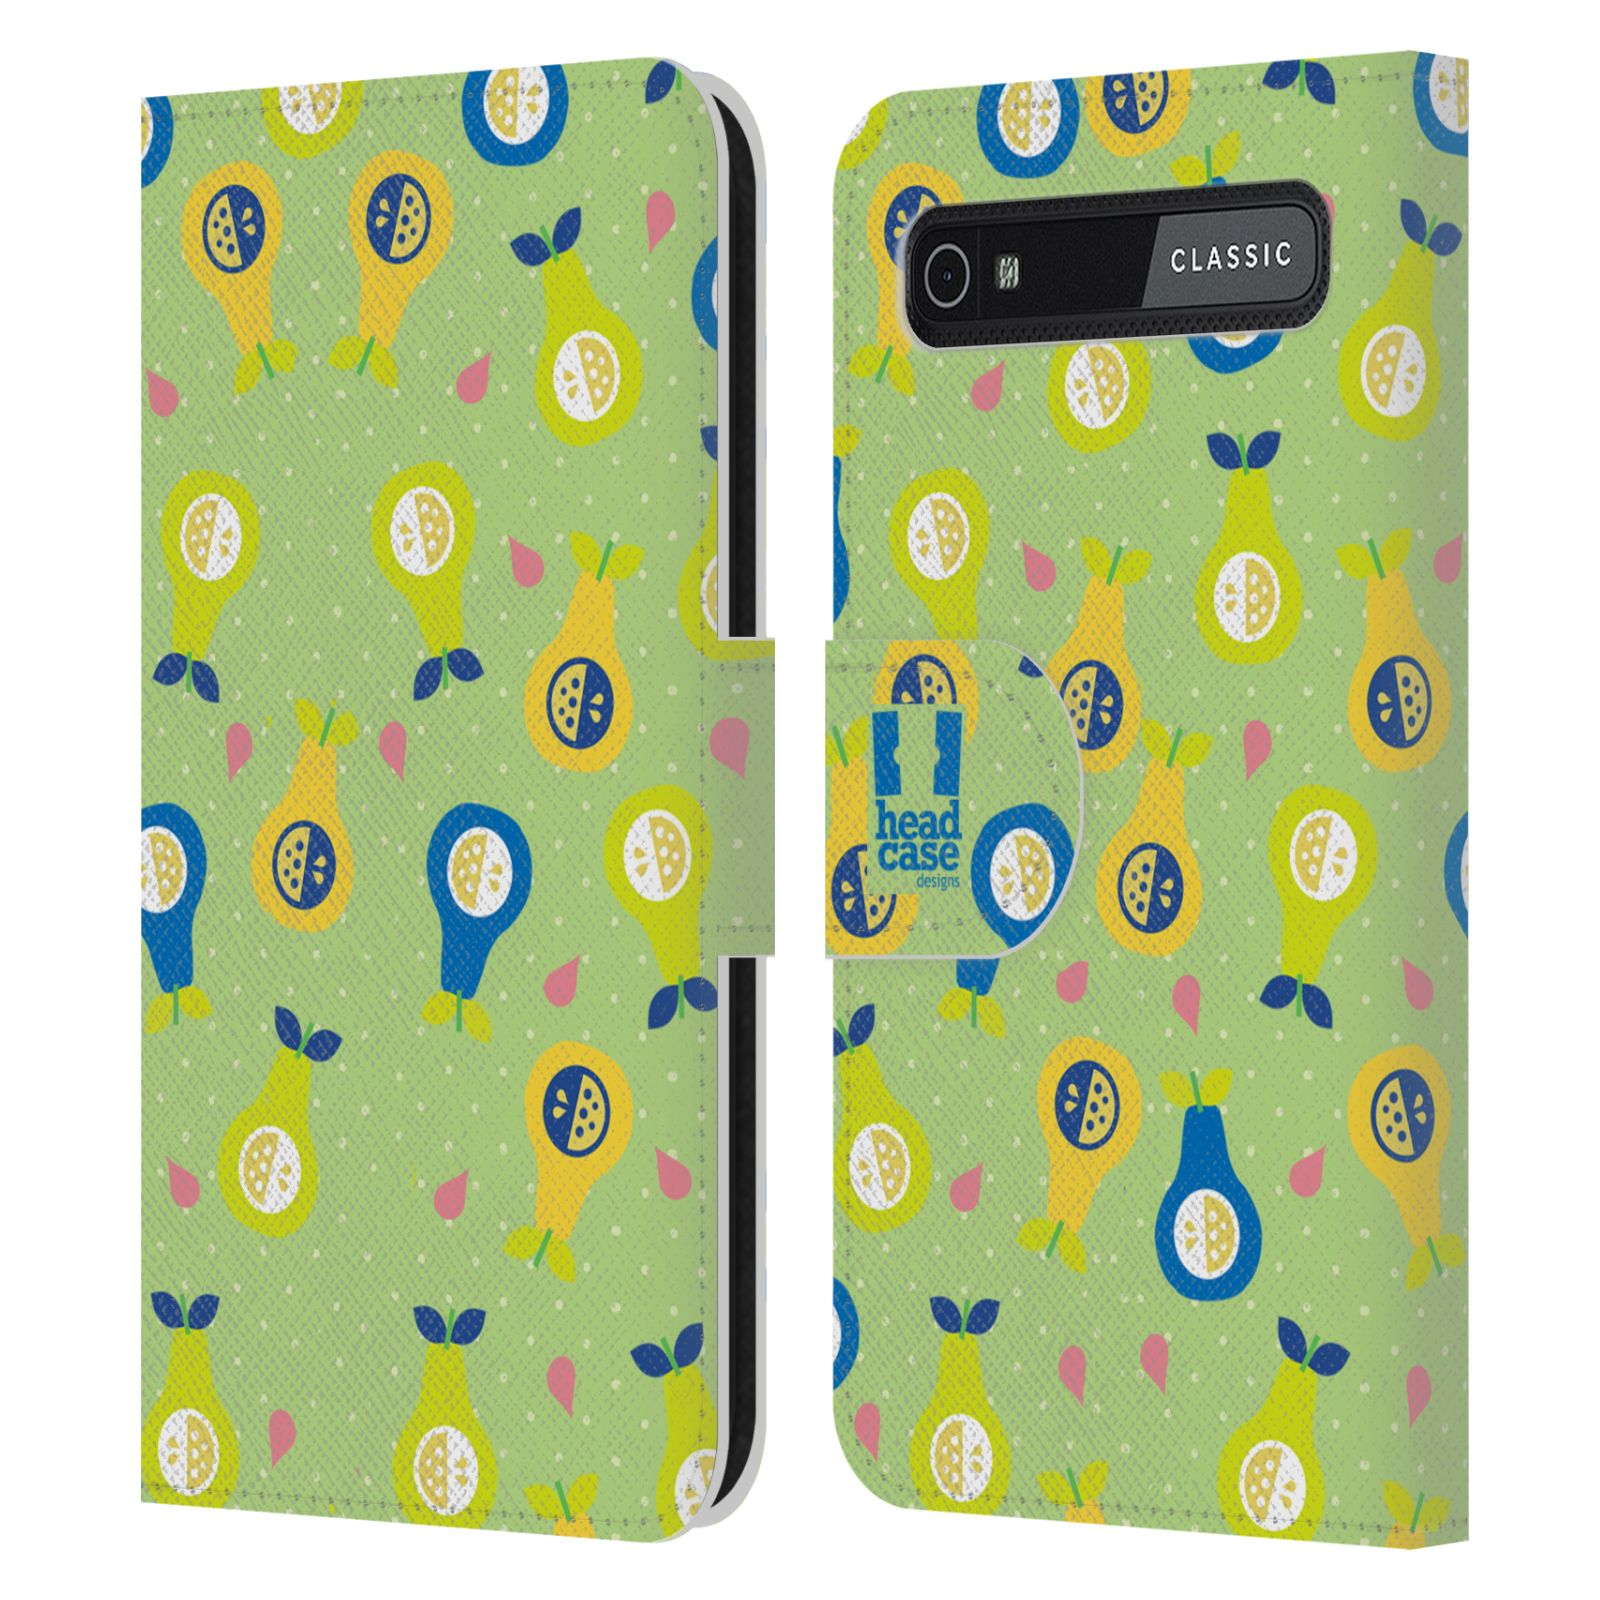 Book Cover Black Berry : Fruit patterns leather book wallet case cover for